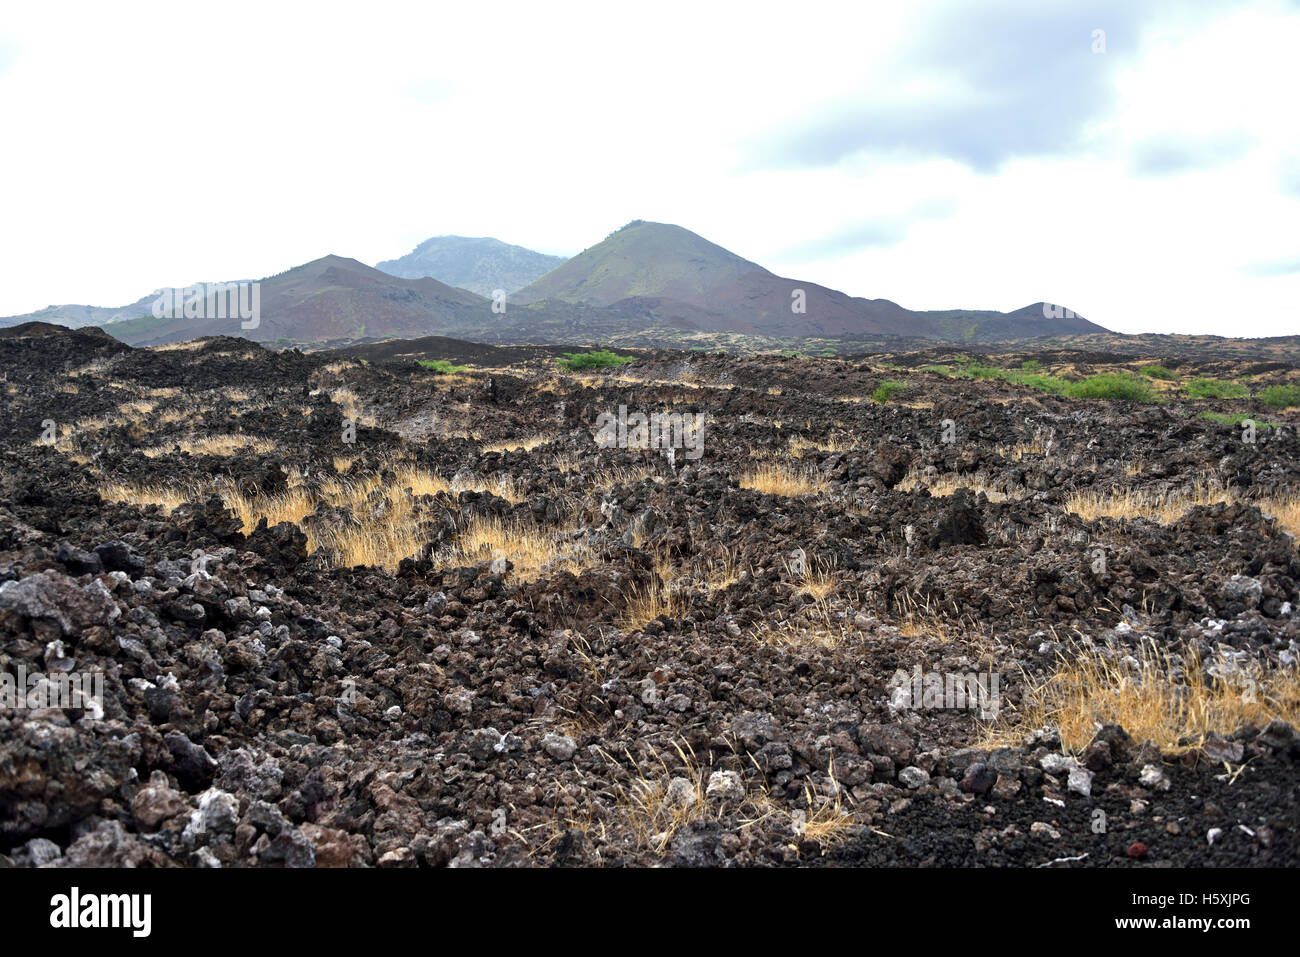 The Lava Fields at Booby Hill in the South West of Ascension Island - Stock Image